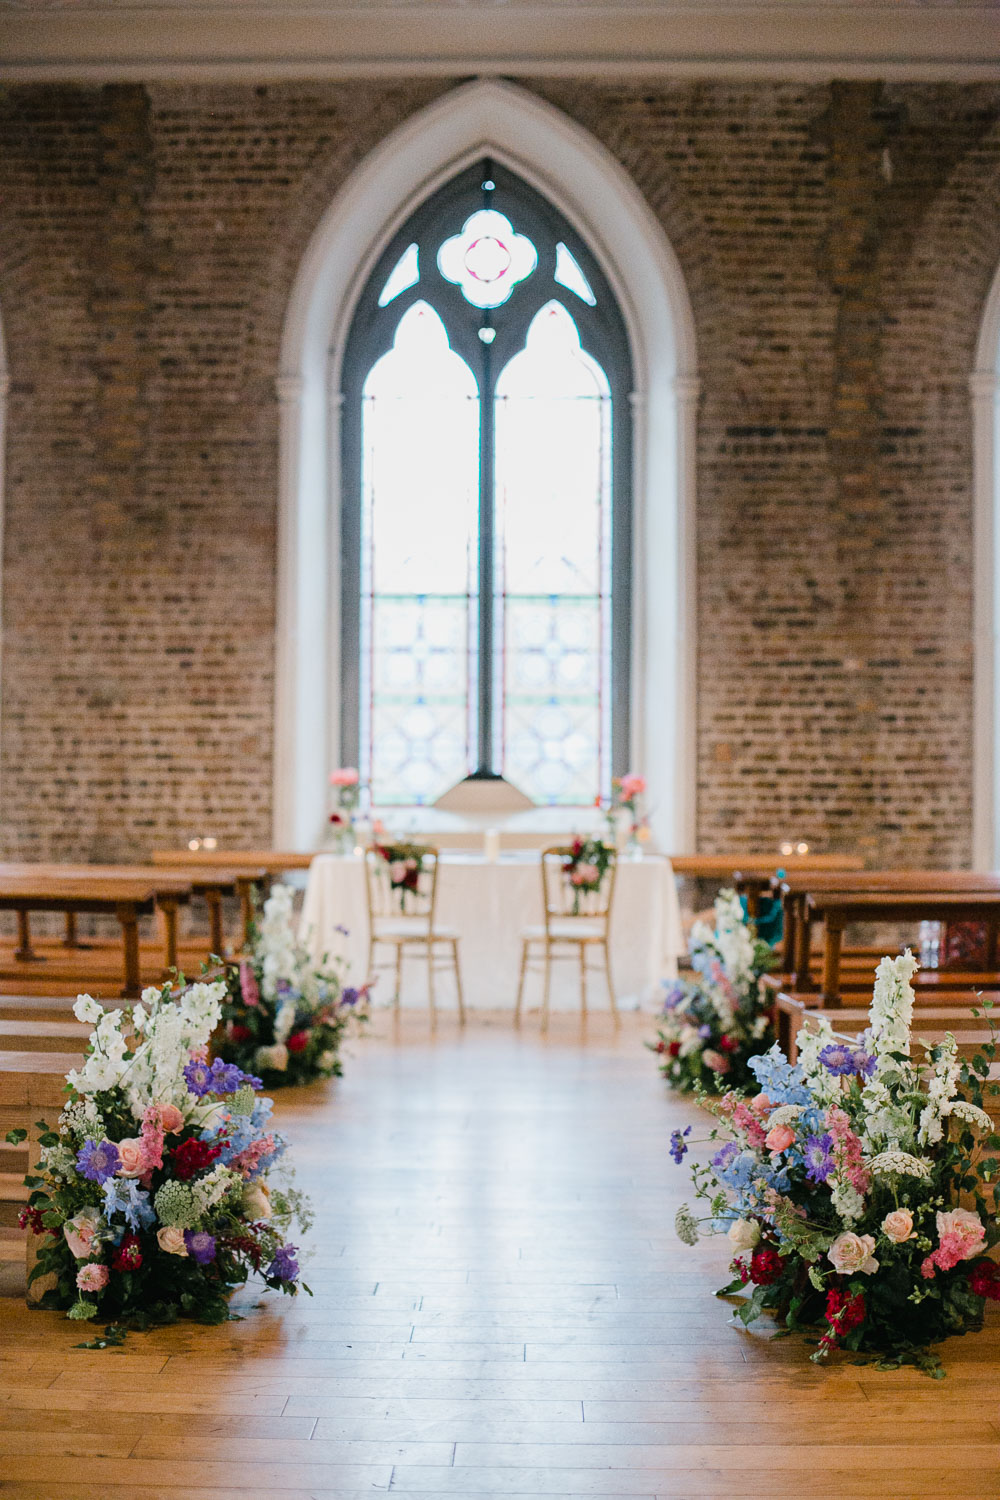 Smock Alley Theatre Wedding Flowers